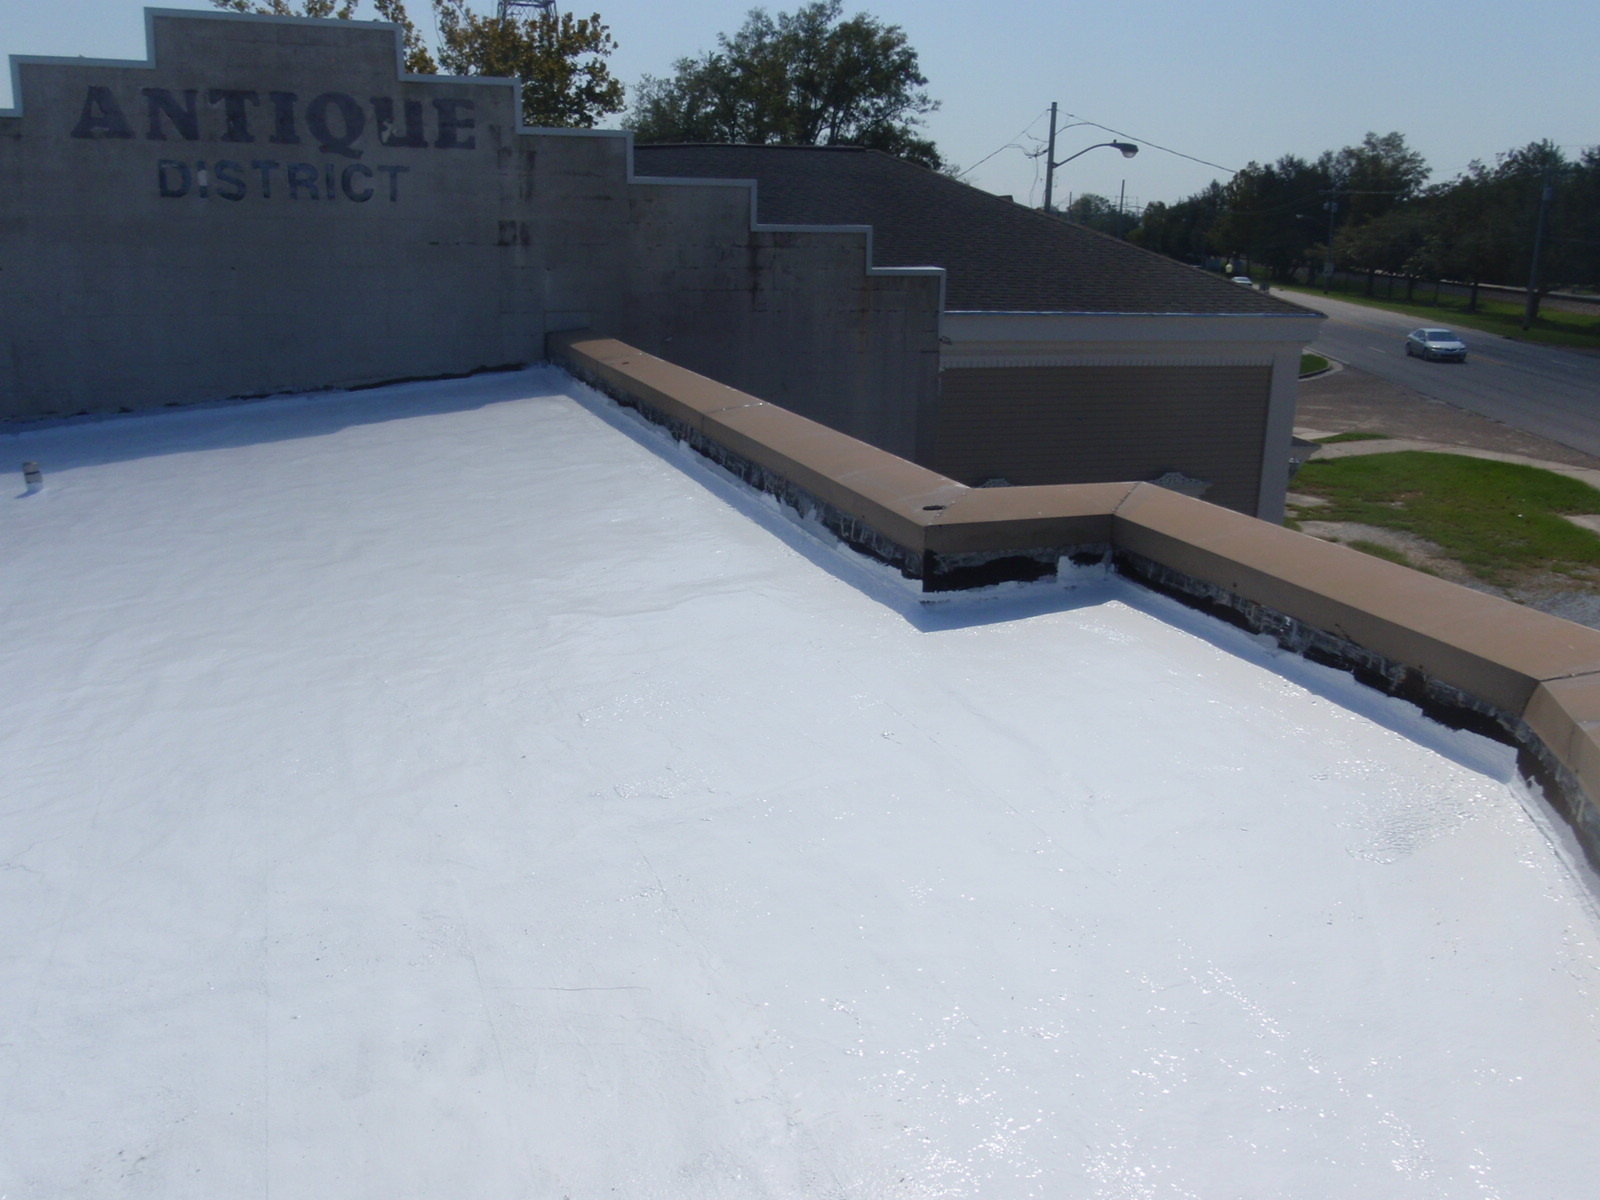 Silicone Roof After Coating | Jaymar Roofing New Orleans, Mandeville, Covington, Slidell and Gulf Coast MS